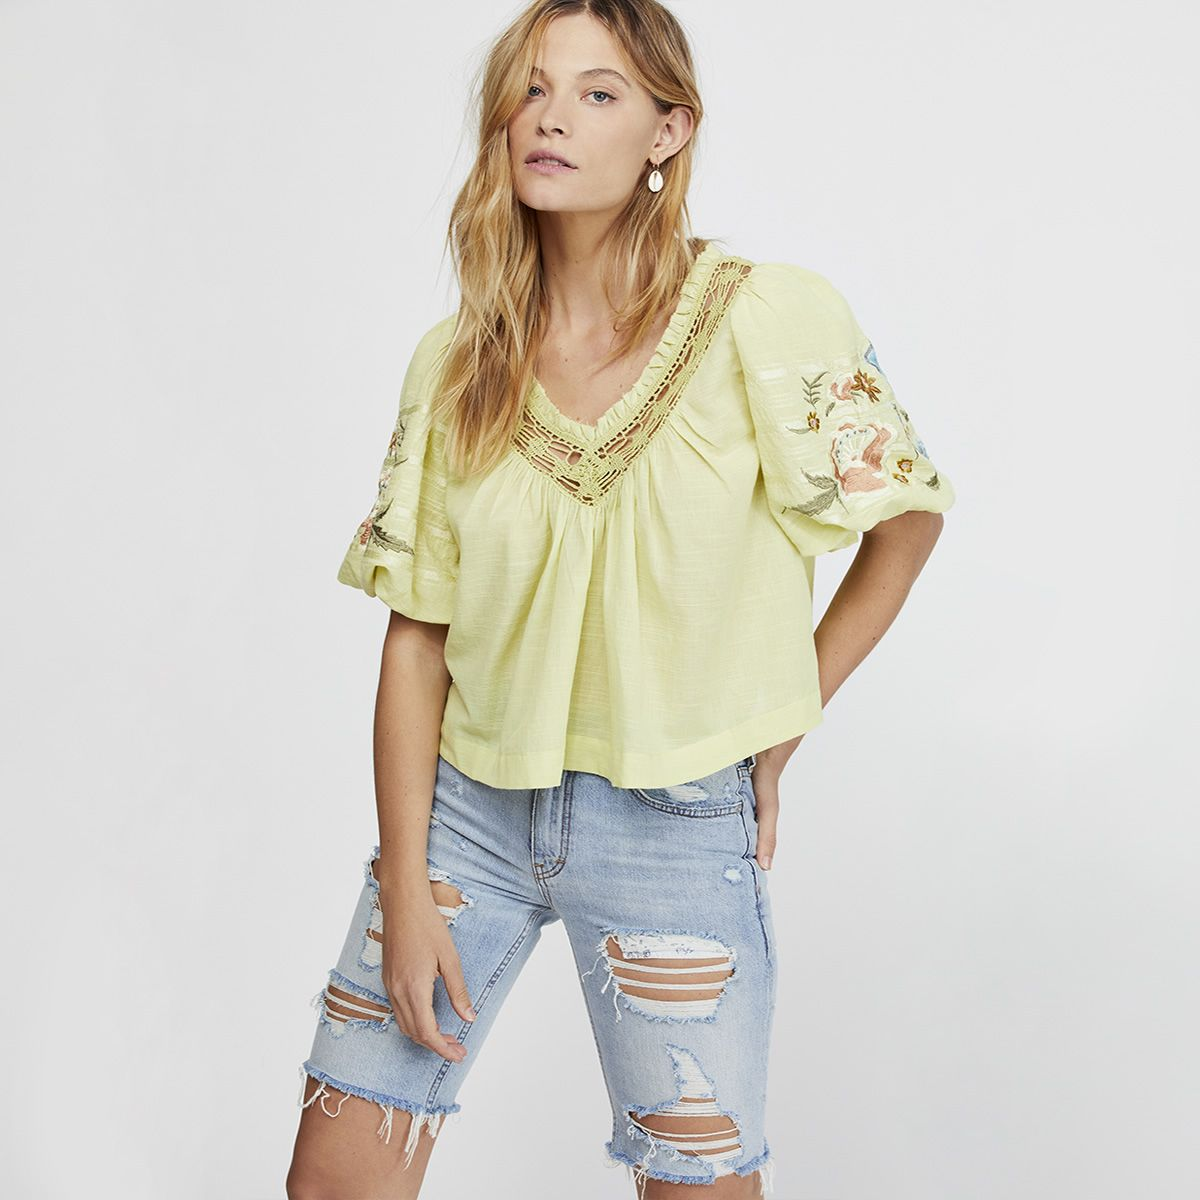 4ad064d1755 Free People Clothing - Womens Apparel - Macy's